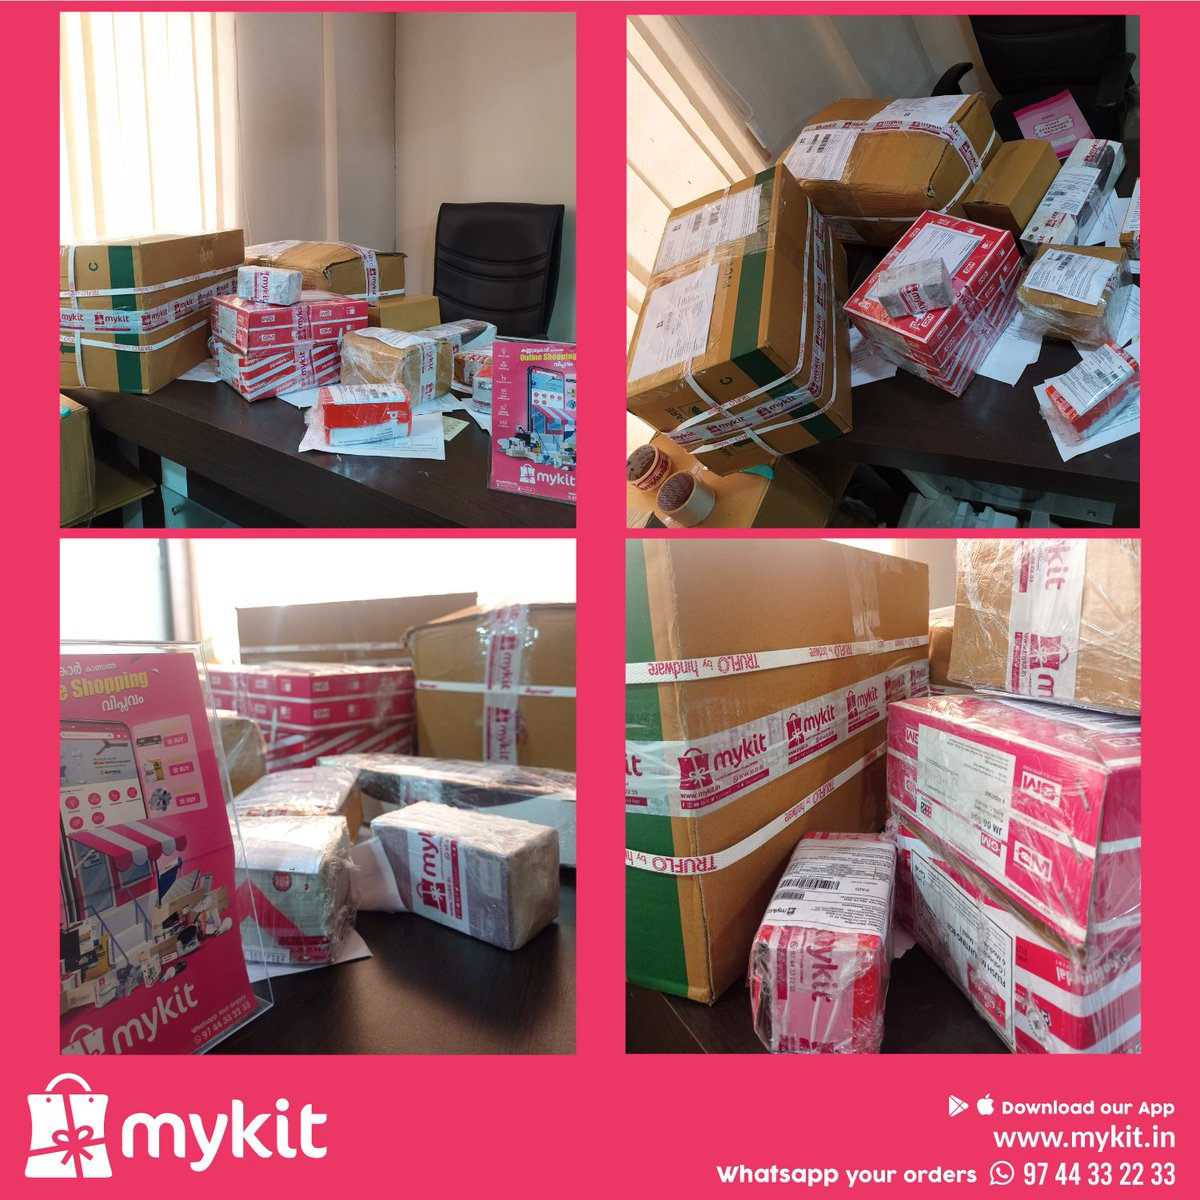 We are back with more safety precautions than ever. Trying hard to ship items on time in this pandemic situation. Took a break for your and our staff safety.  Stay Home, Stay Safe   #mykitcart #mykit #onlineshopping #lockdown #lockdowndelivery #stahomestaysafe #kannur #kerala https://t.co/G2Pzh4OlRu